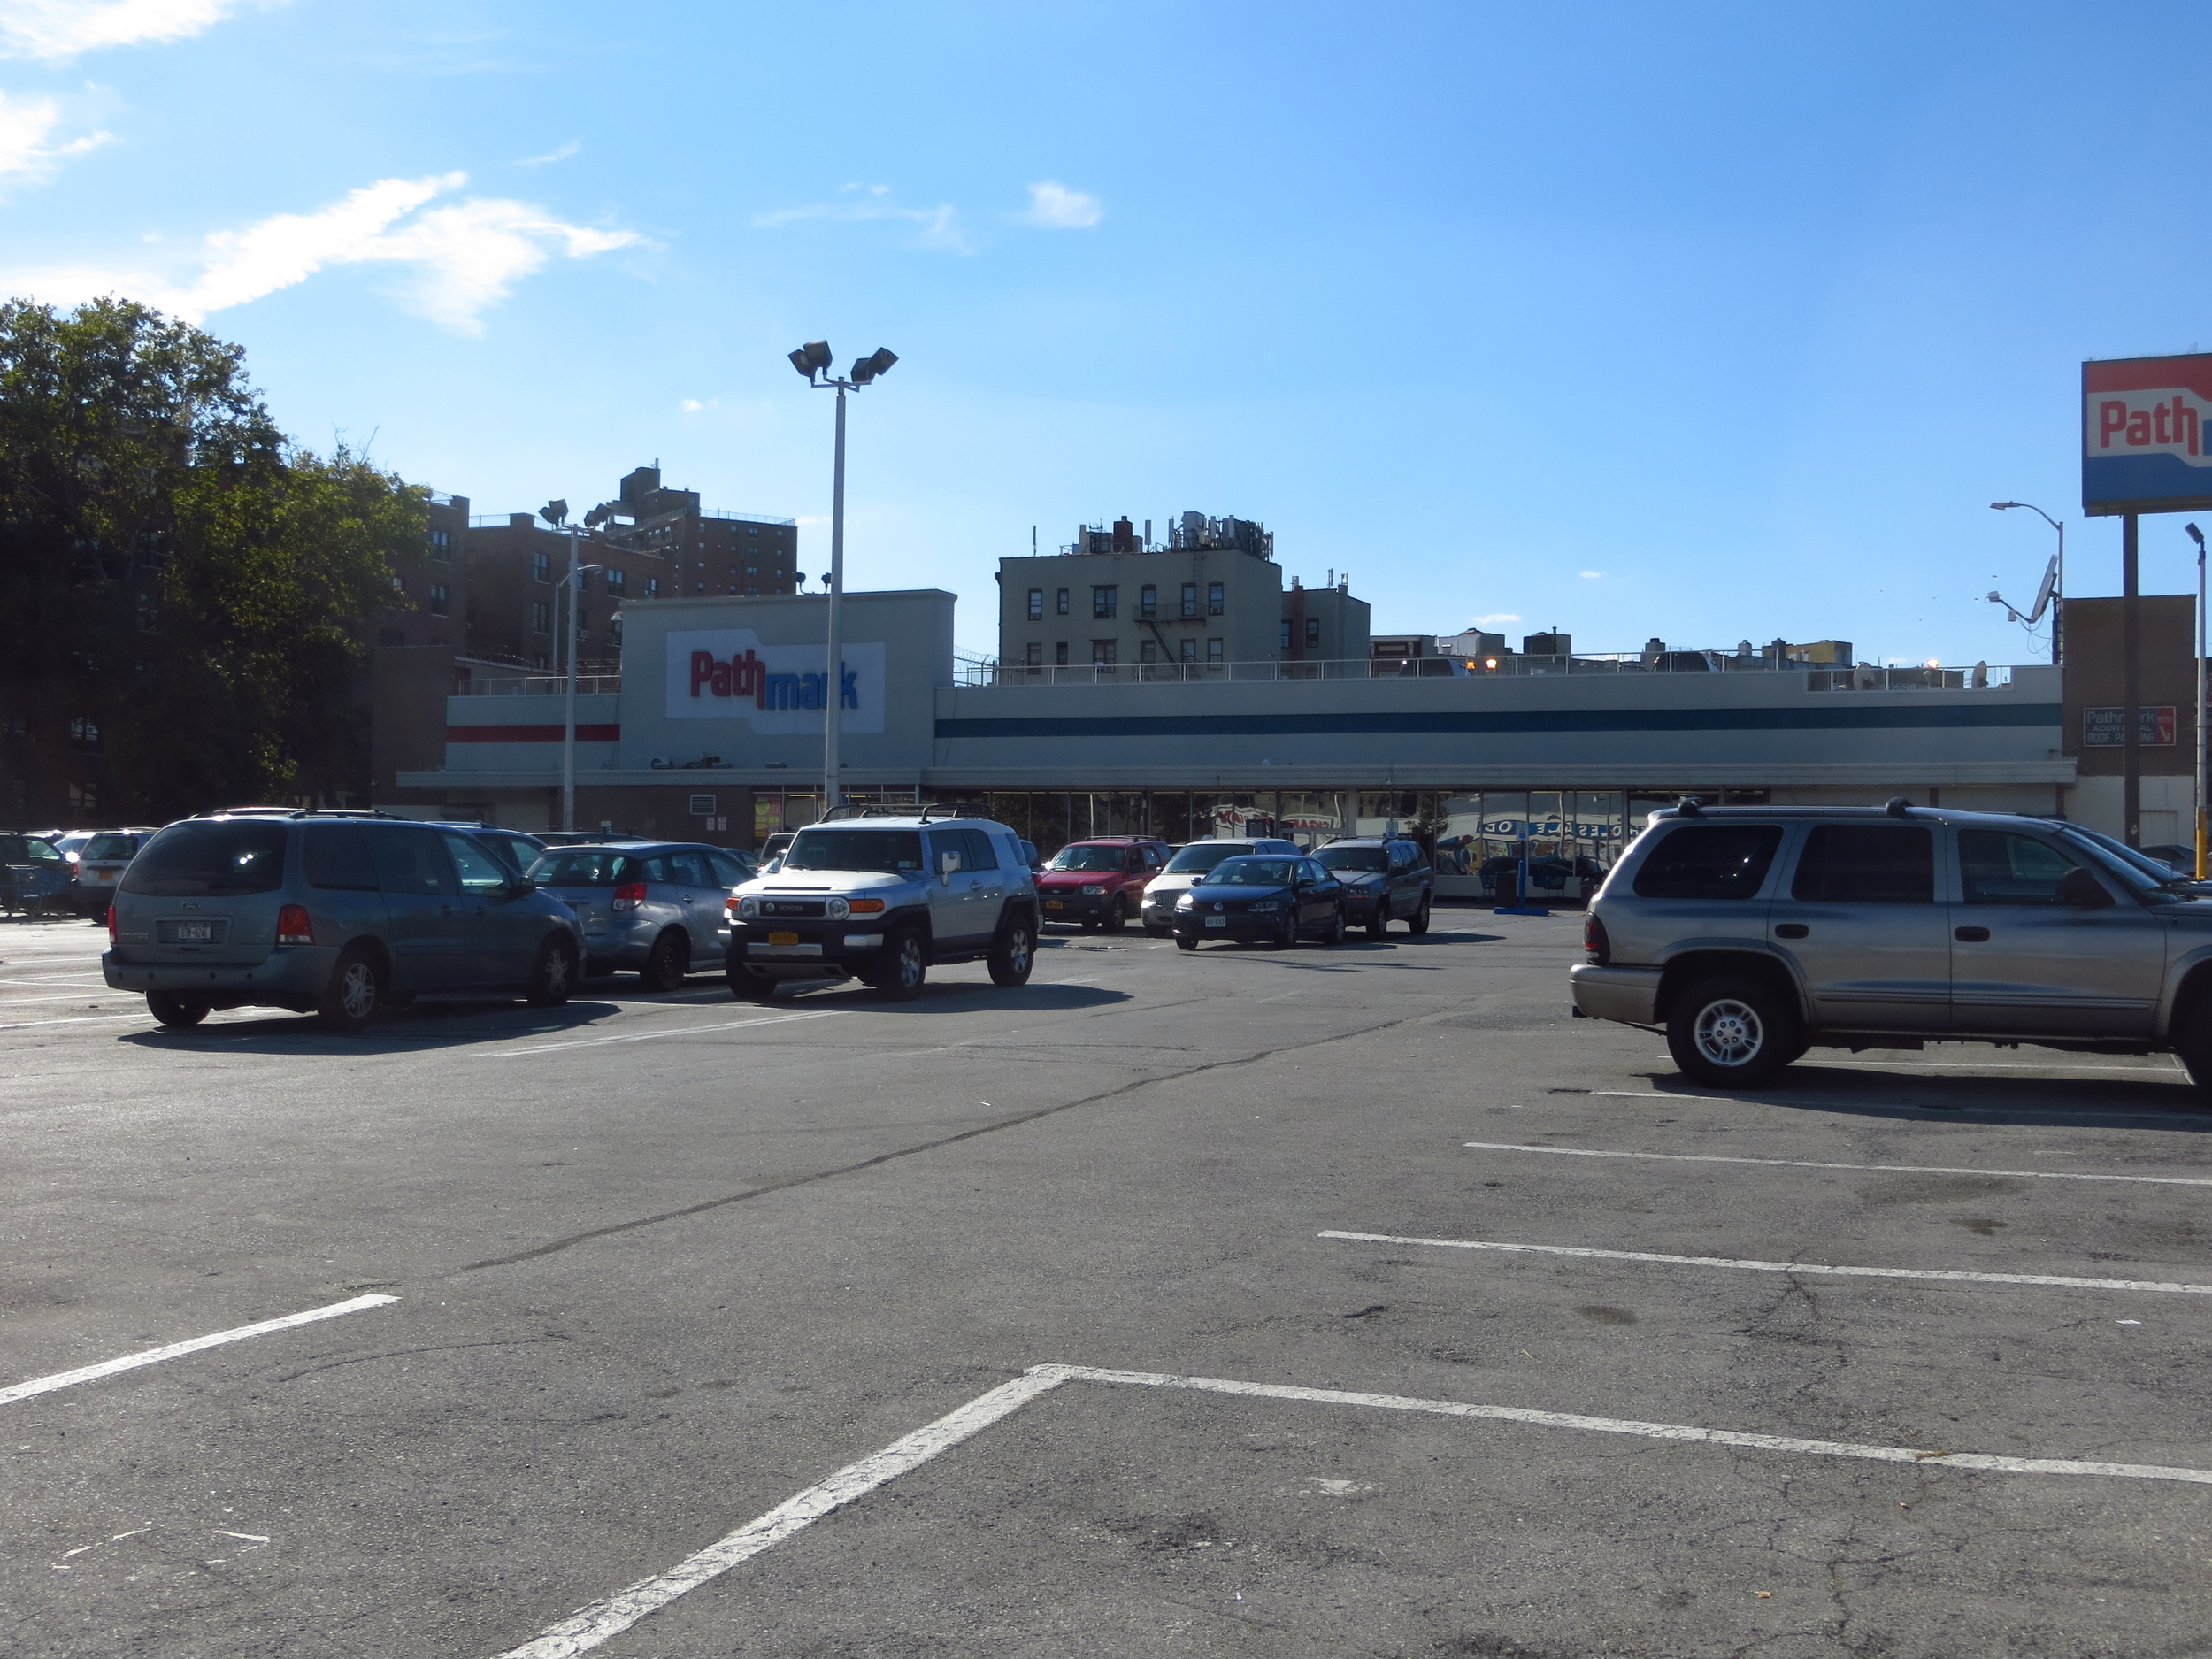 I think this is the largest commercial parking lot in Manhattan